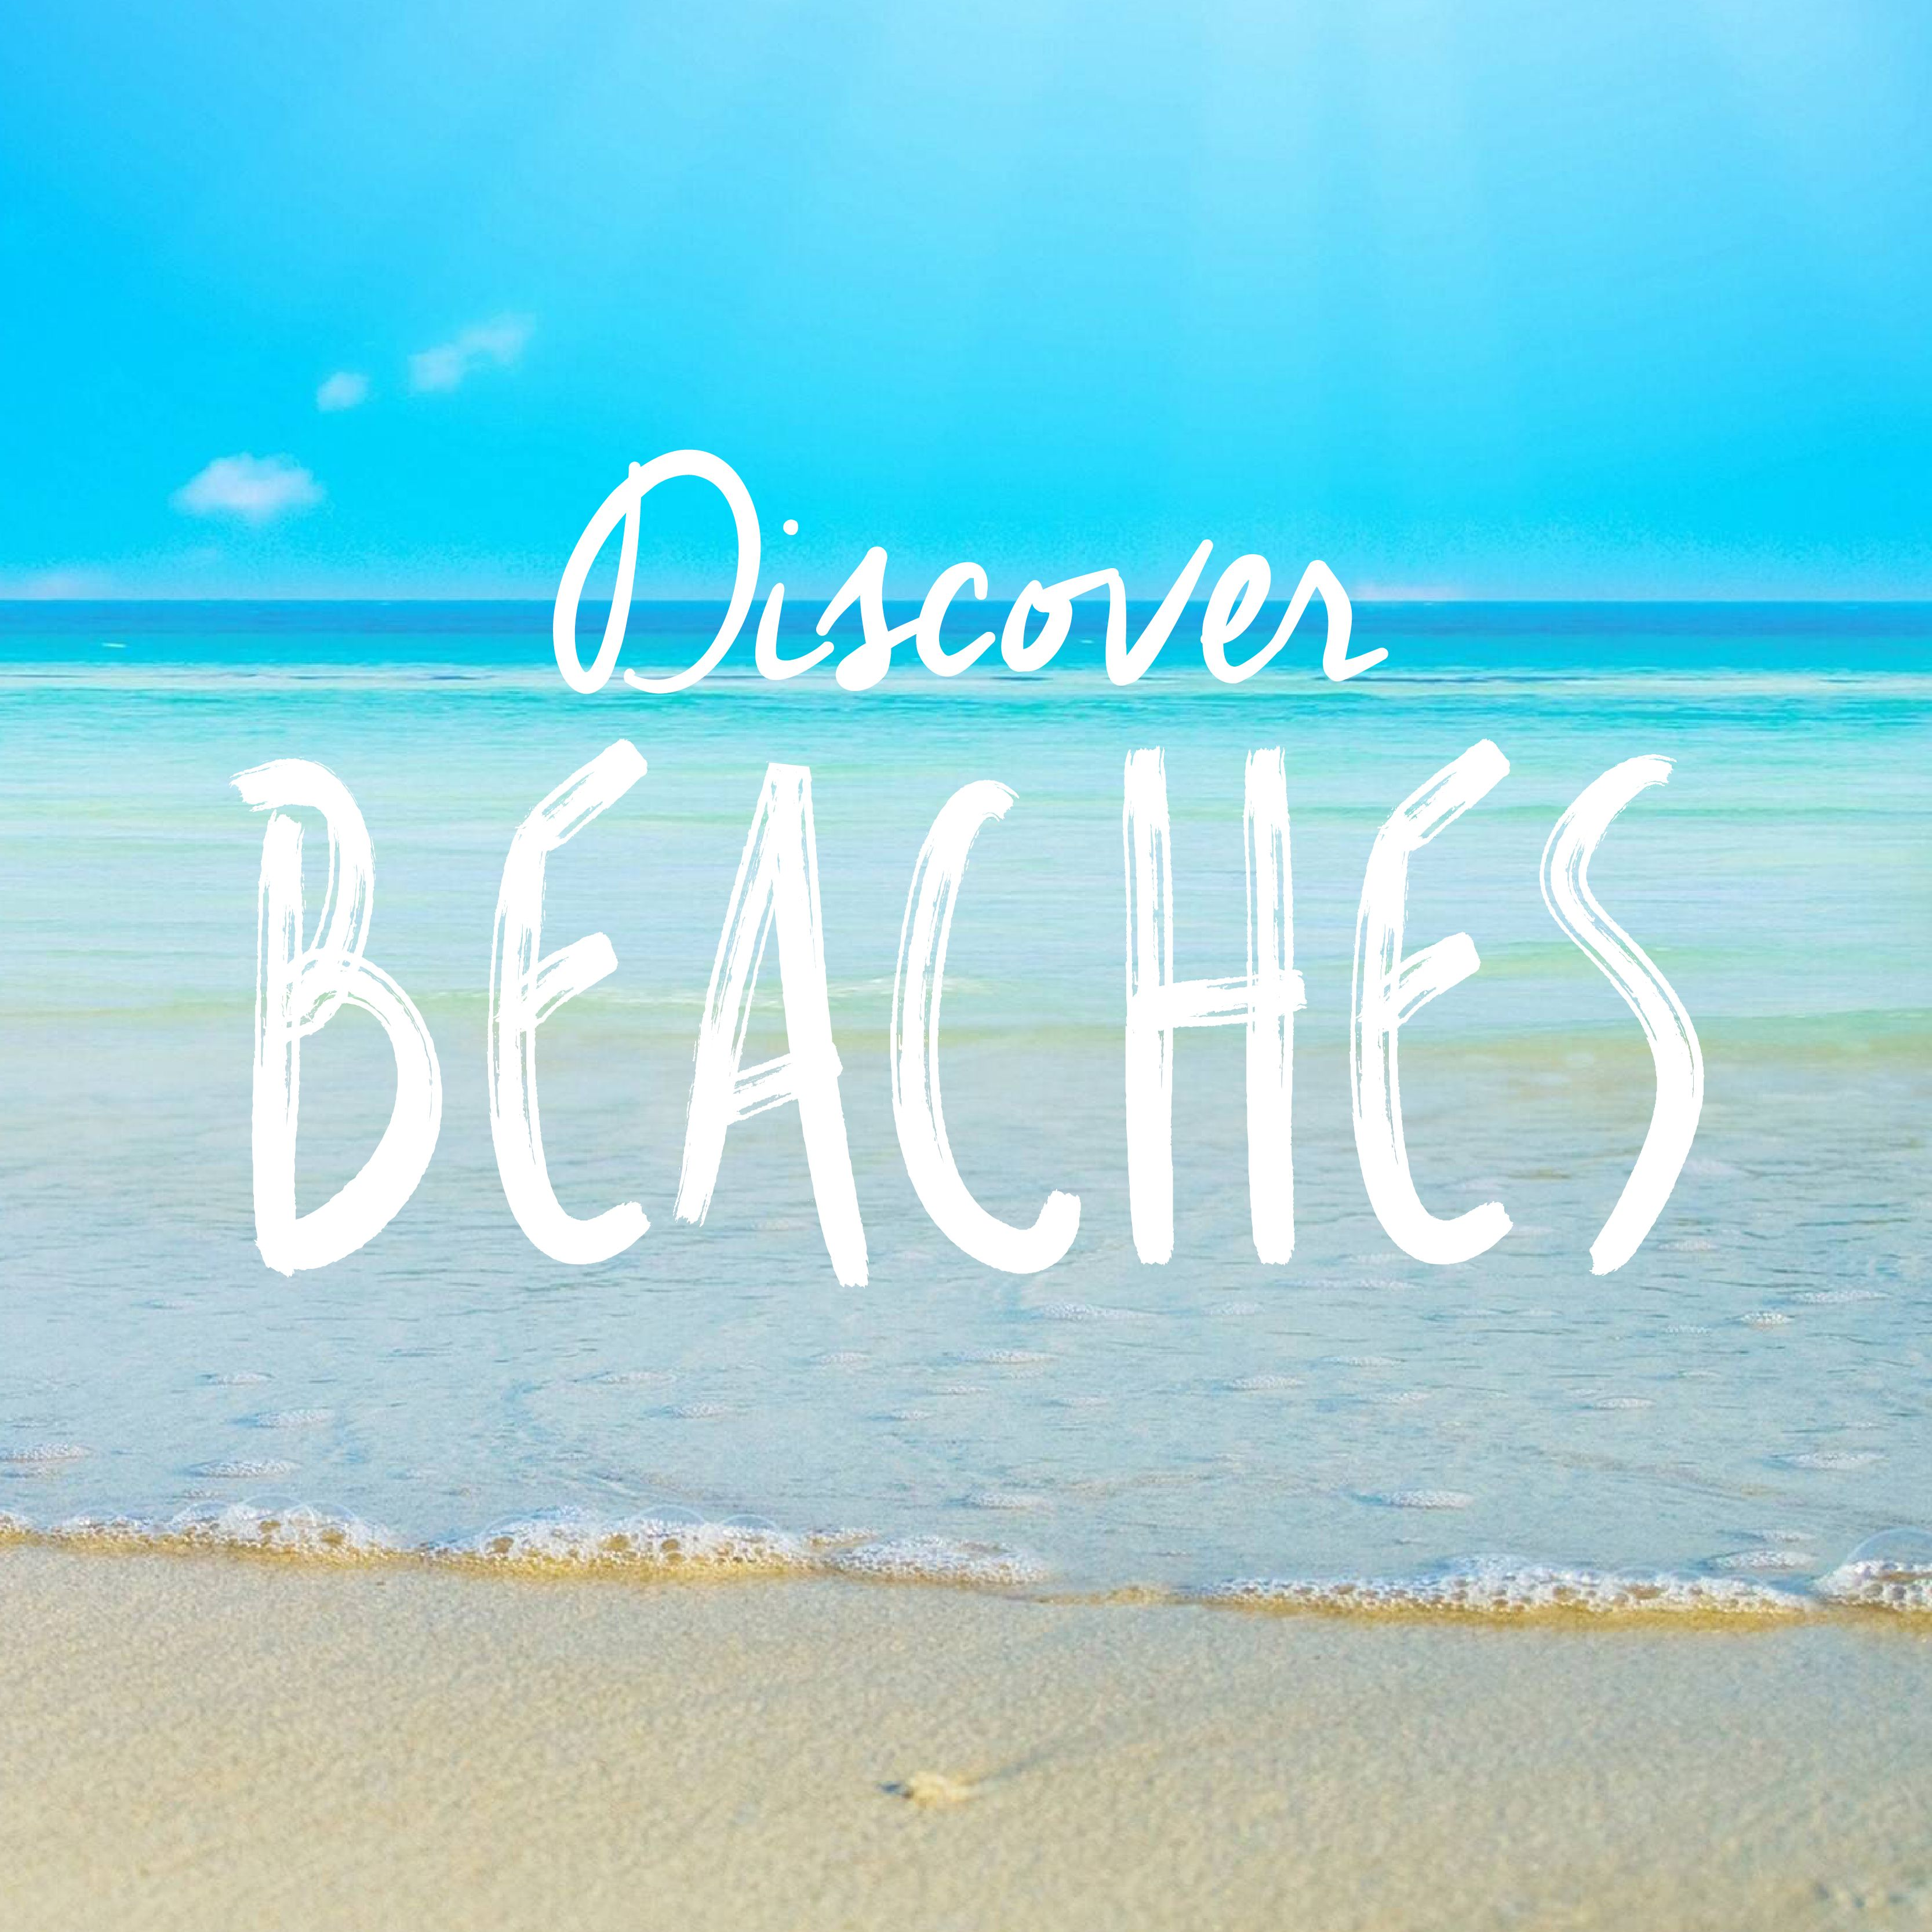 Since leaving our Dreams resort, we have been dreaming of the day that we can discover another Dream resort! #DiscoverDreamsSweeps